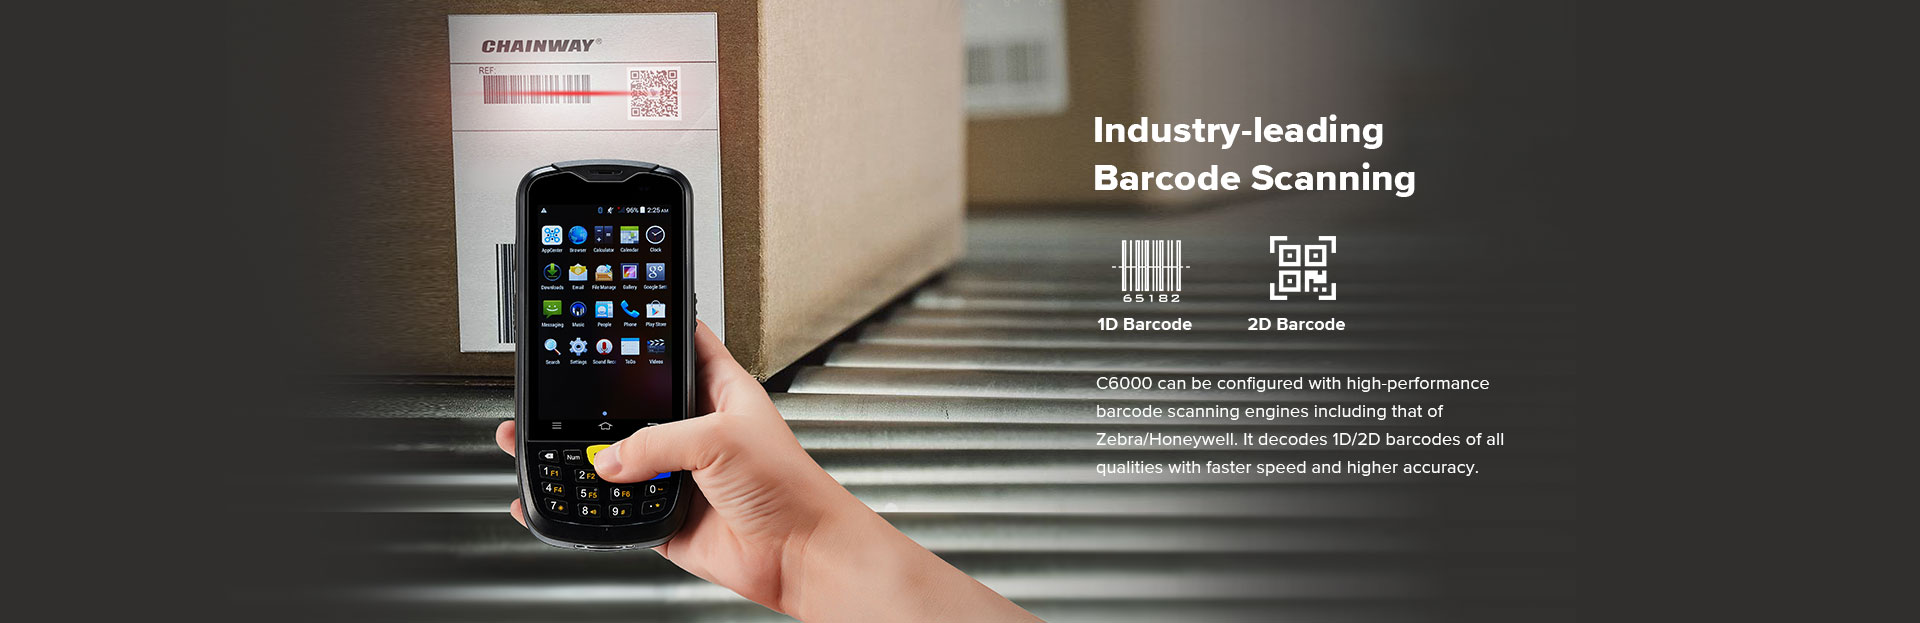 C6000 Rugged Handheld Computer Android - Barcode scanning